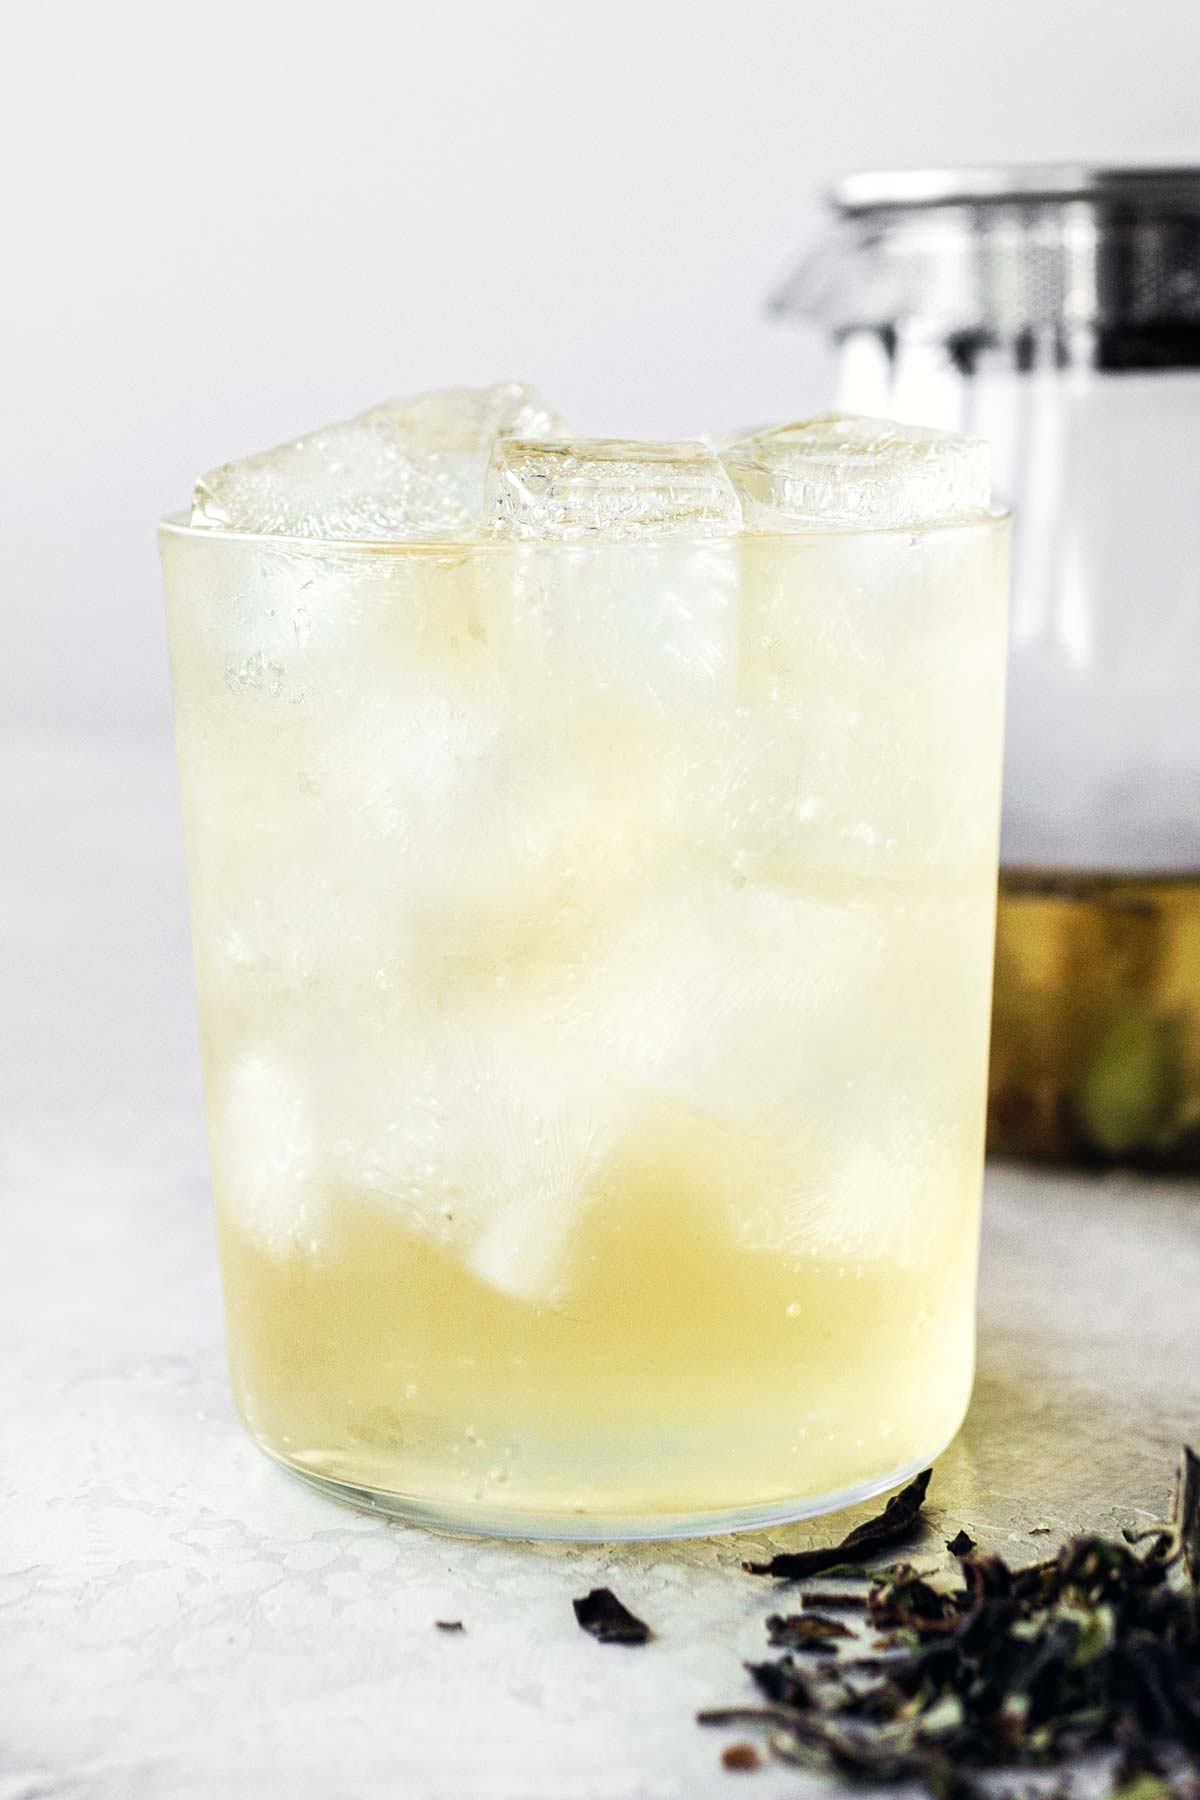 Iced White Peony tea in a glass.